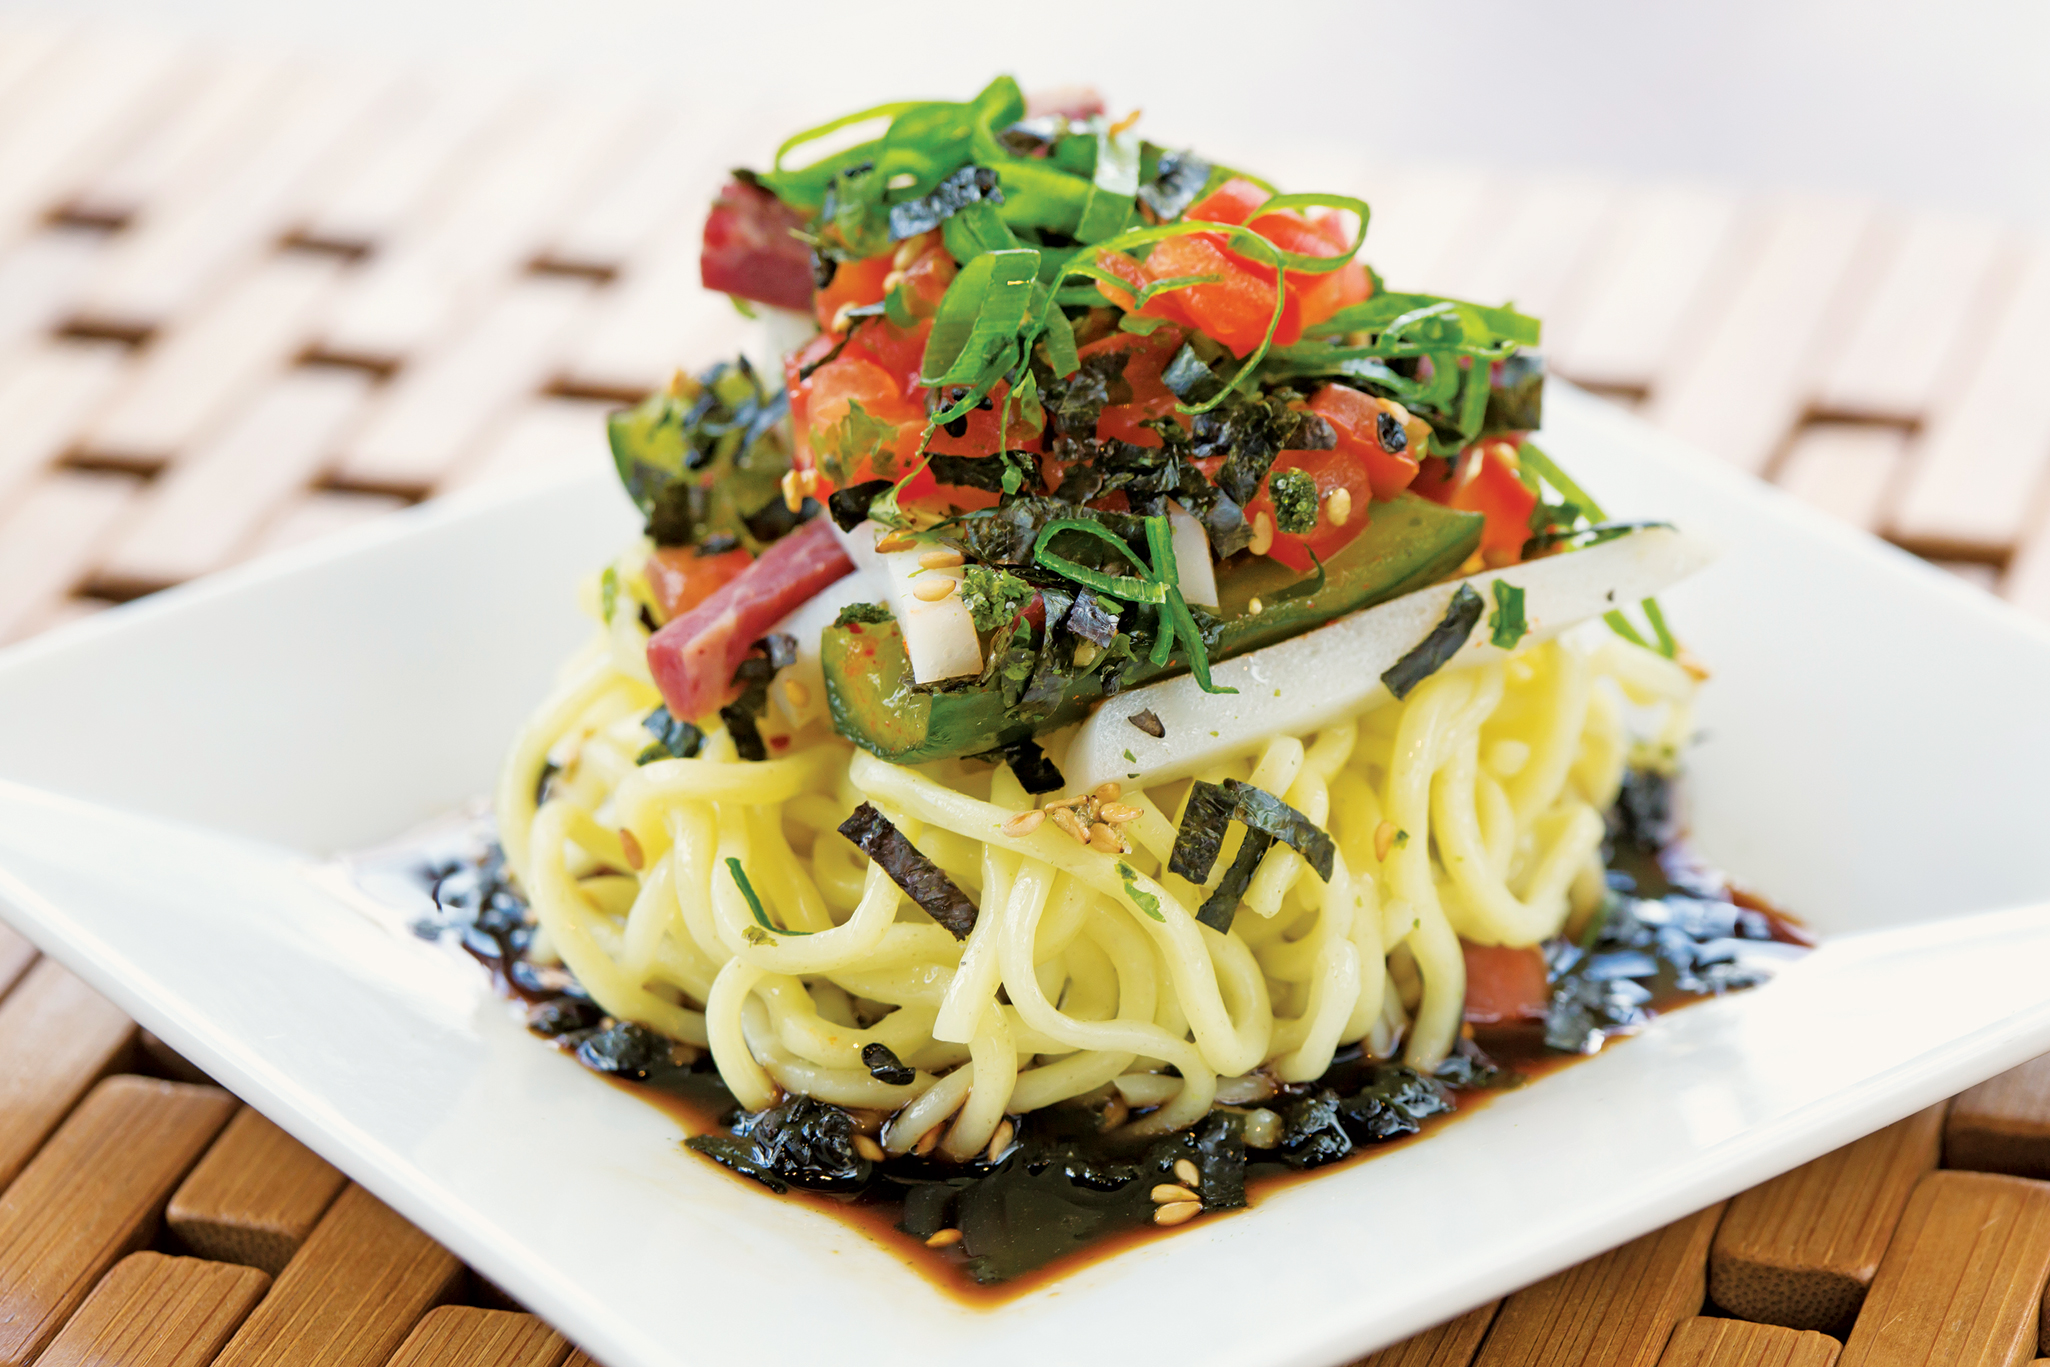 Hawaiian Airlines New First Class Featured Chef Series